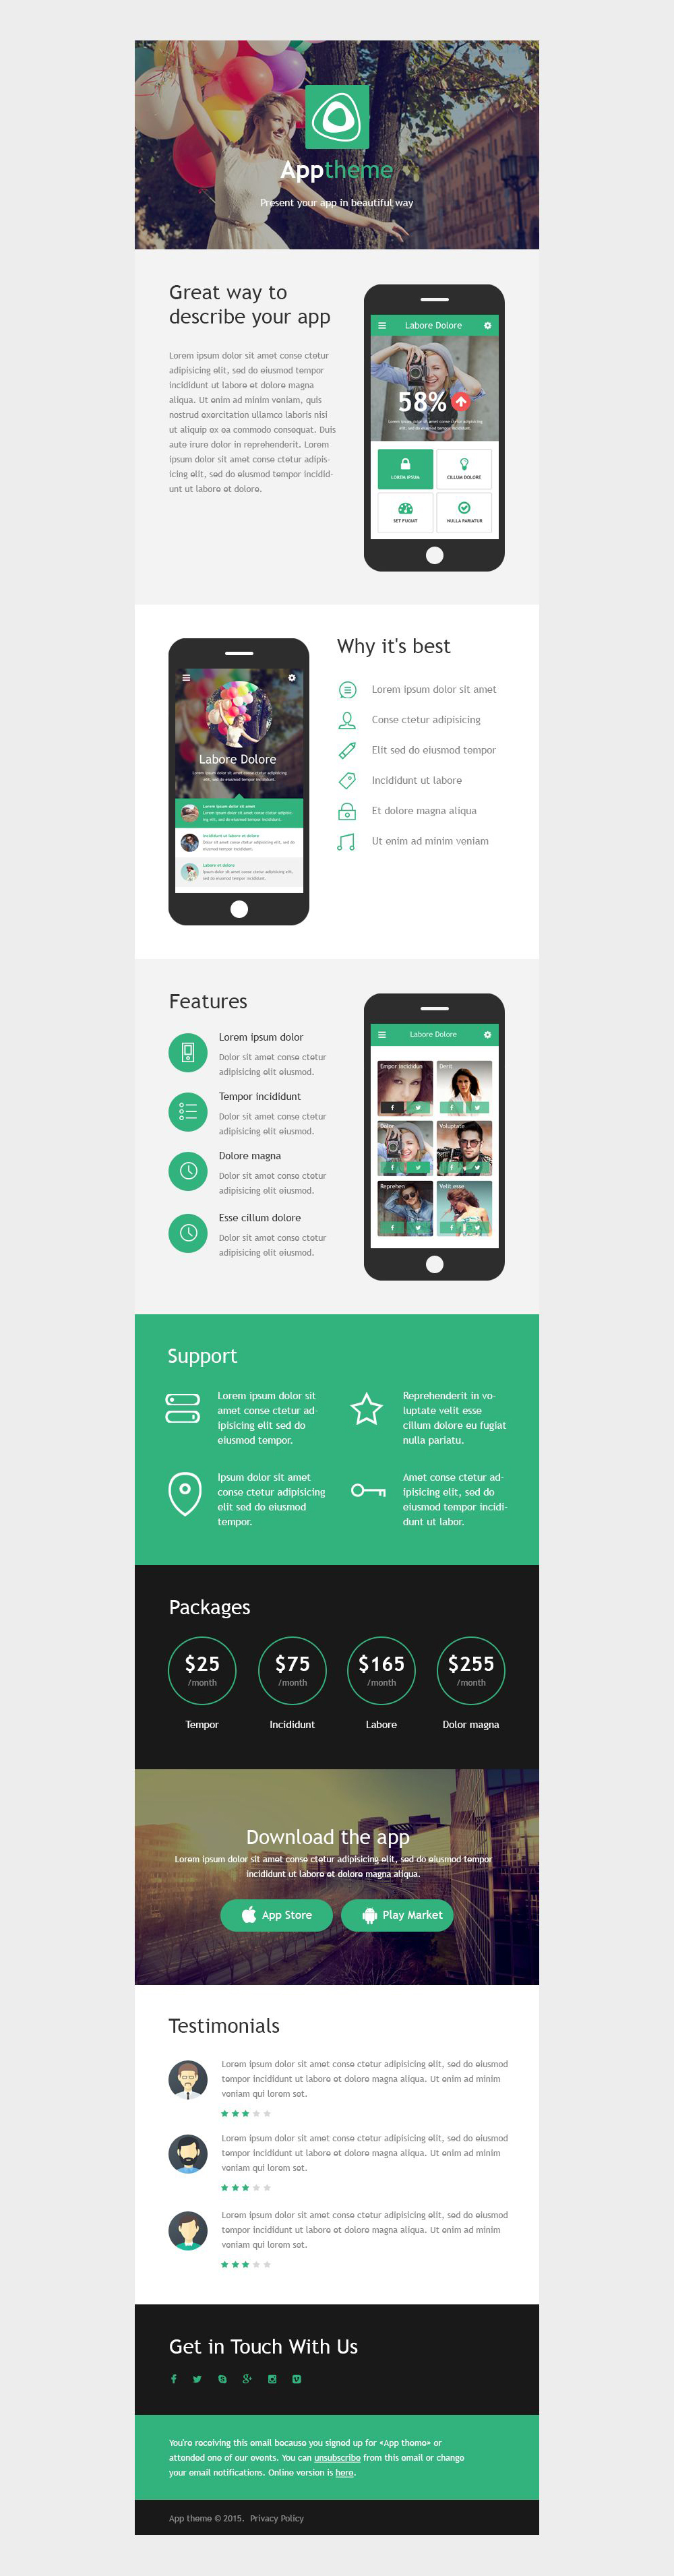 The Apptheme Application Newsletter Template Design 53196, one of the best Newsletter templates of its kind (software, most popular), also known as apptheme application Newsletter template, software Newsletter template, web development Newsletter template, webmasters Newsletter template, designers Newsletter template, internet Newsletter template, www Newsletter template, sites Newsletter template, web design Newsletter template, webpage Newsletter template, internet Newsletter template, aps and related with apptheme application, software, web development, webmasters, designers, internet, www, sites, web design, webpage, internet, aps, etc.